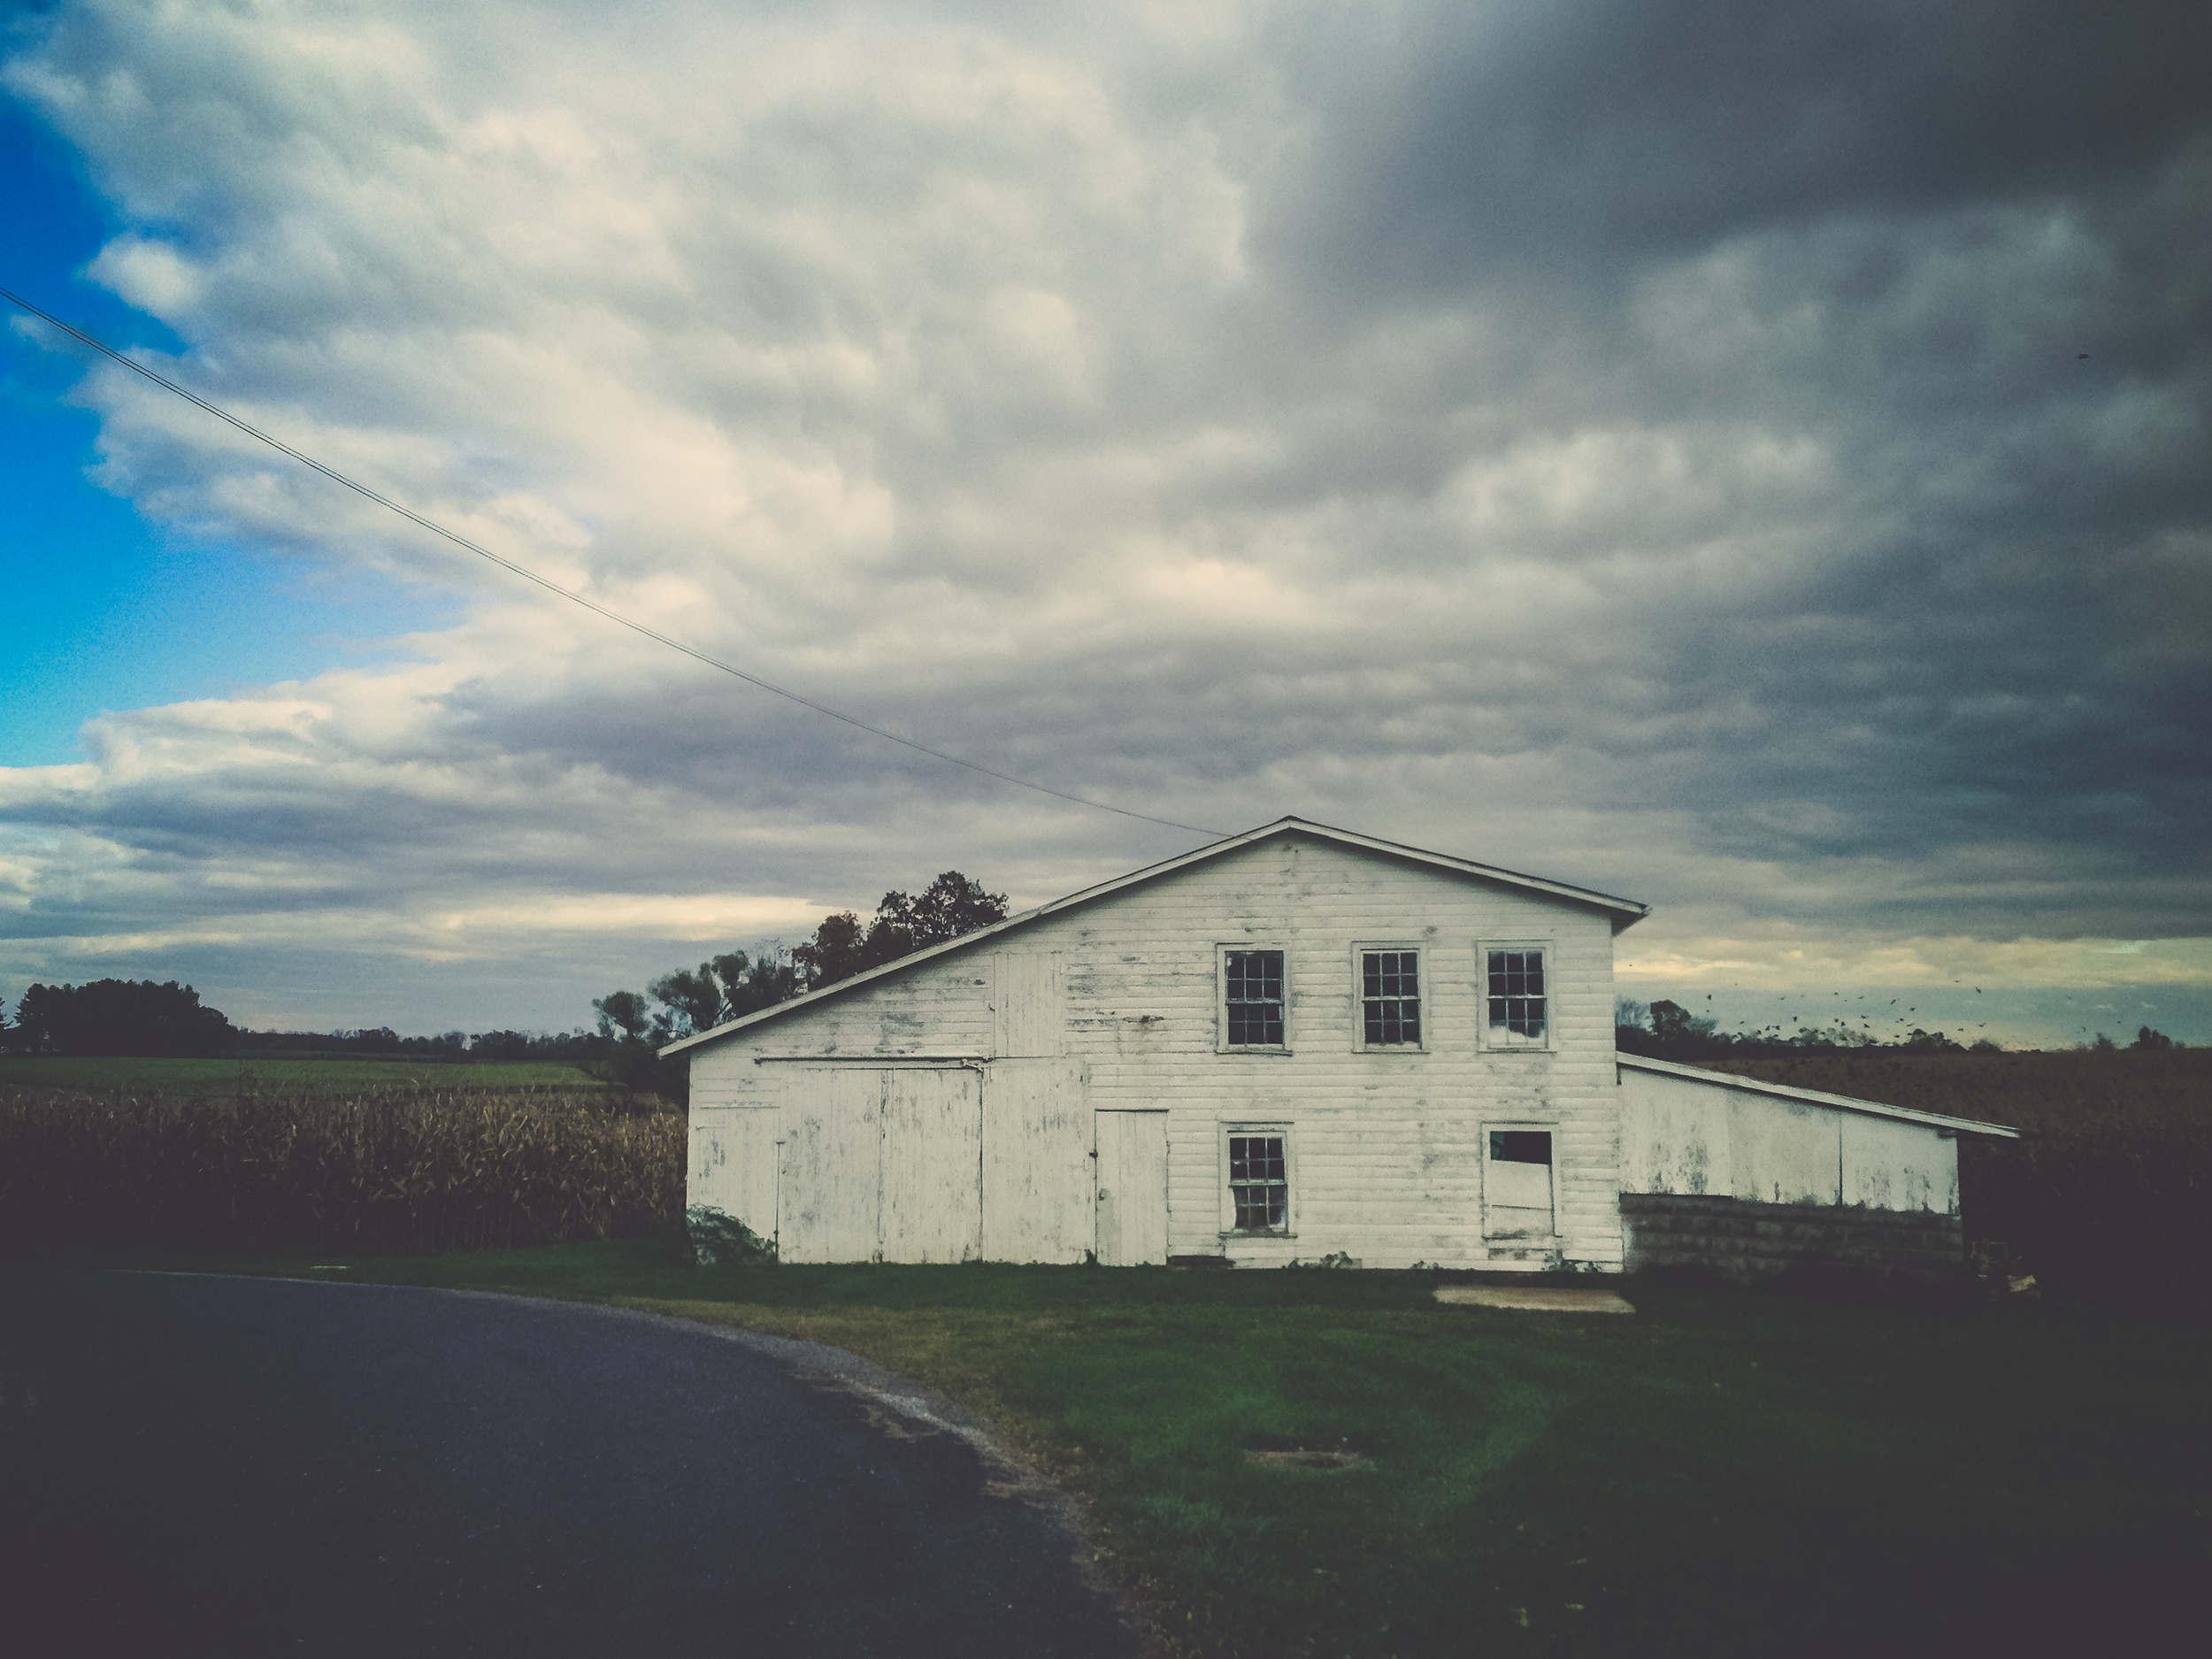 Bushey School Road | York Springs, PA | iPhone5 |© 2016 Christy Hydeck (Click image to view larger + in a new window)